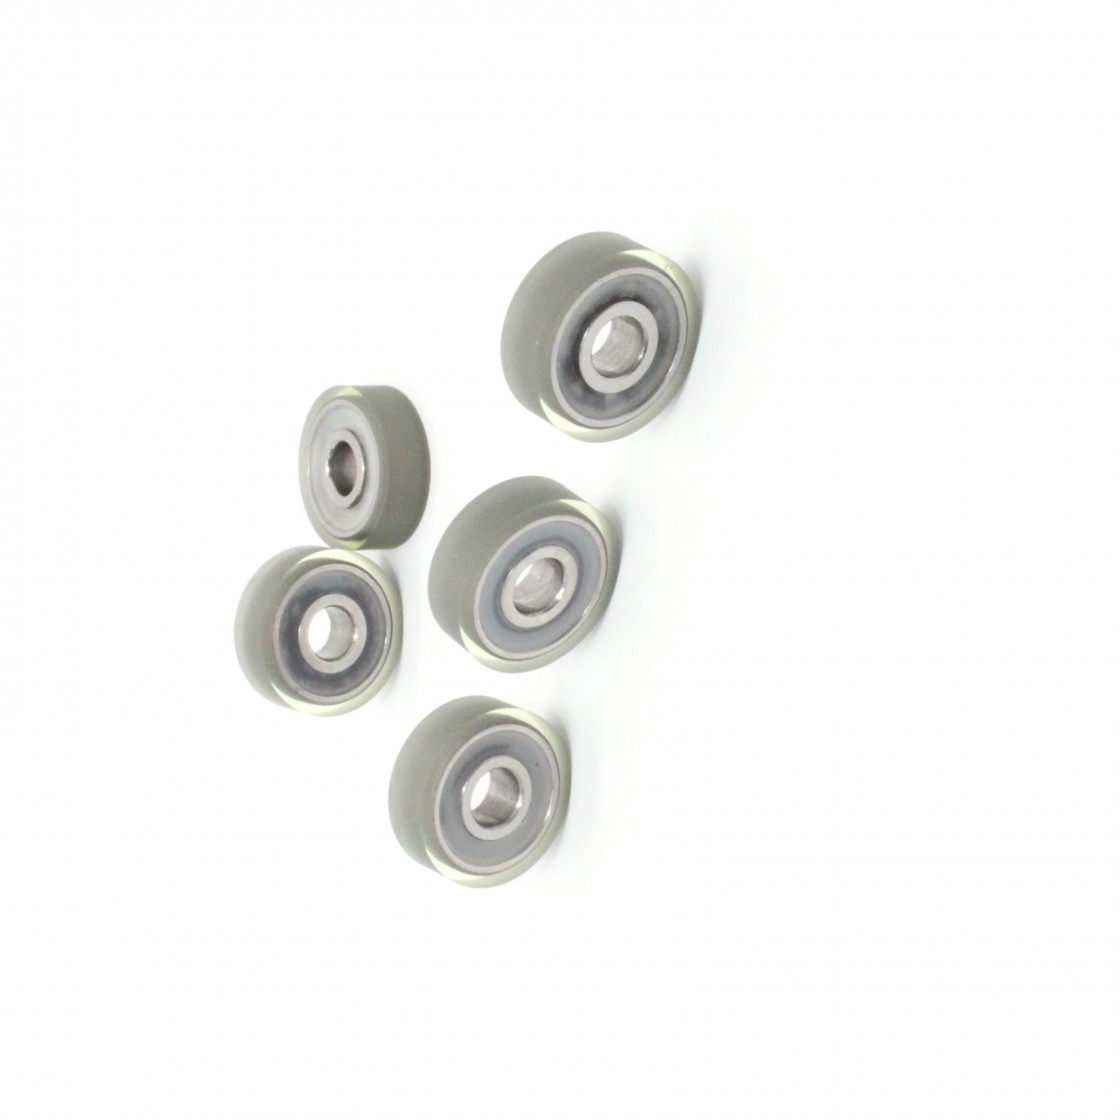 10PCS Flange Ball Bearing 608zz 623zz 624zz 625zz 635zz 626zz 688zz 3D Printers Parts Deep Groove Flanged Pulley Wheel